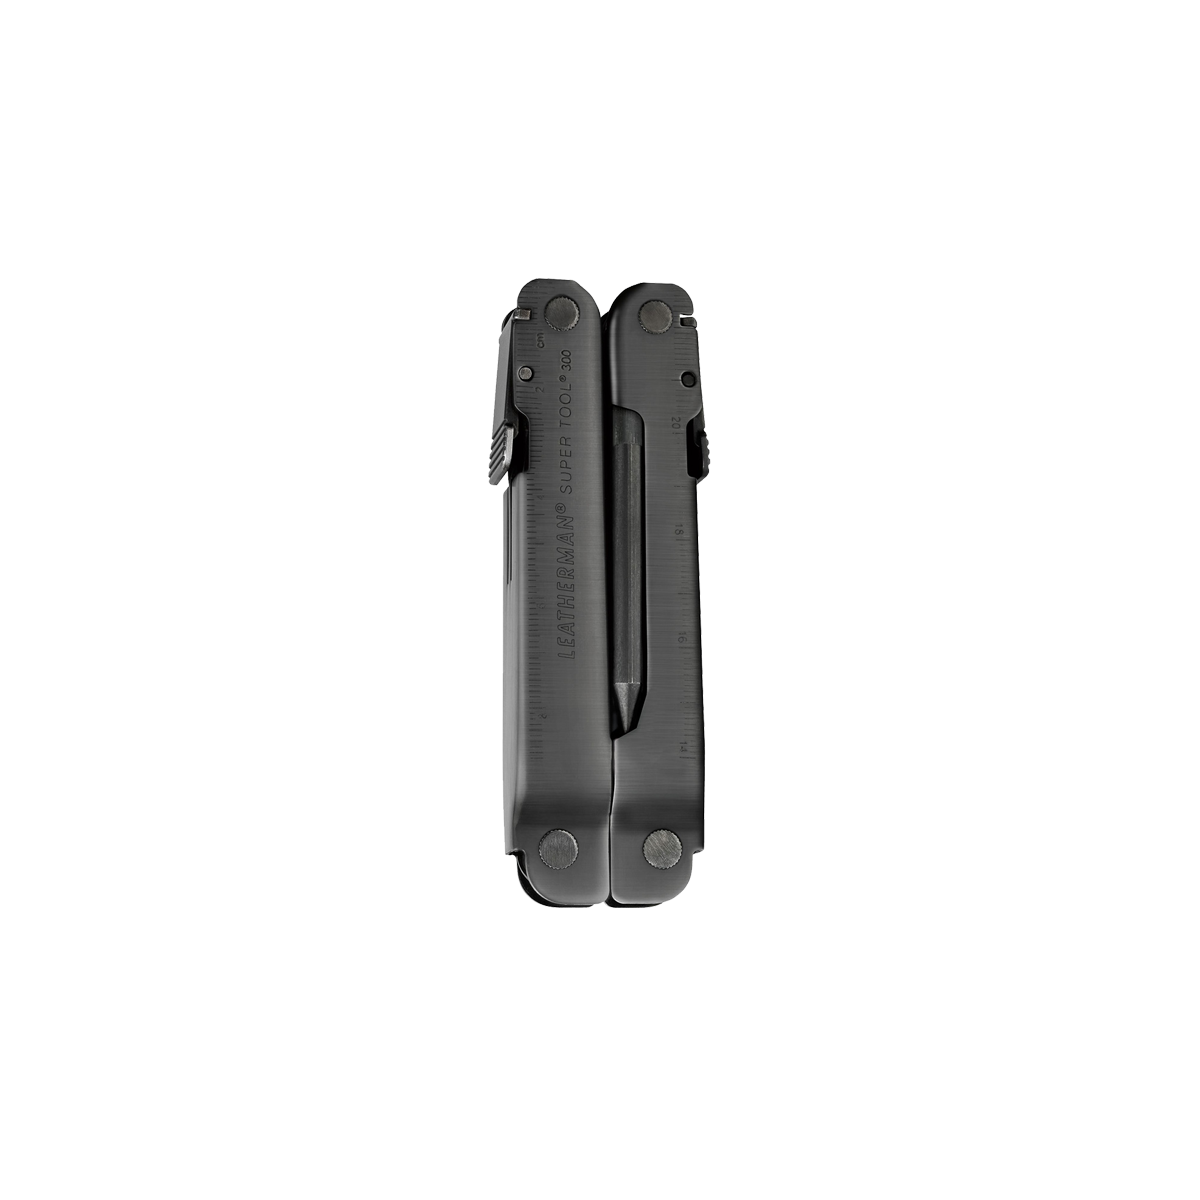 Leatherman super tool 300 eod multi-tool, closed view, black,